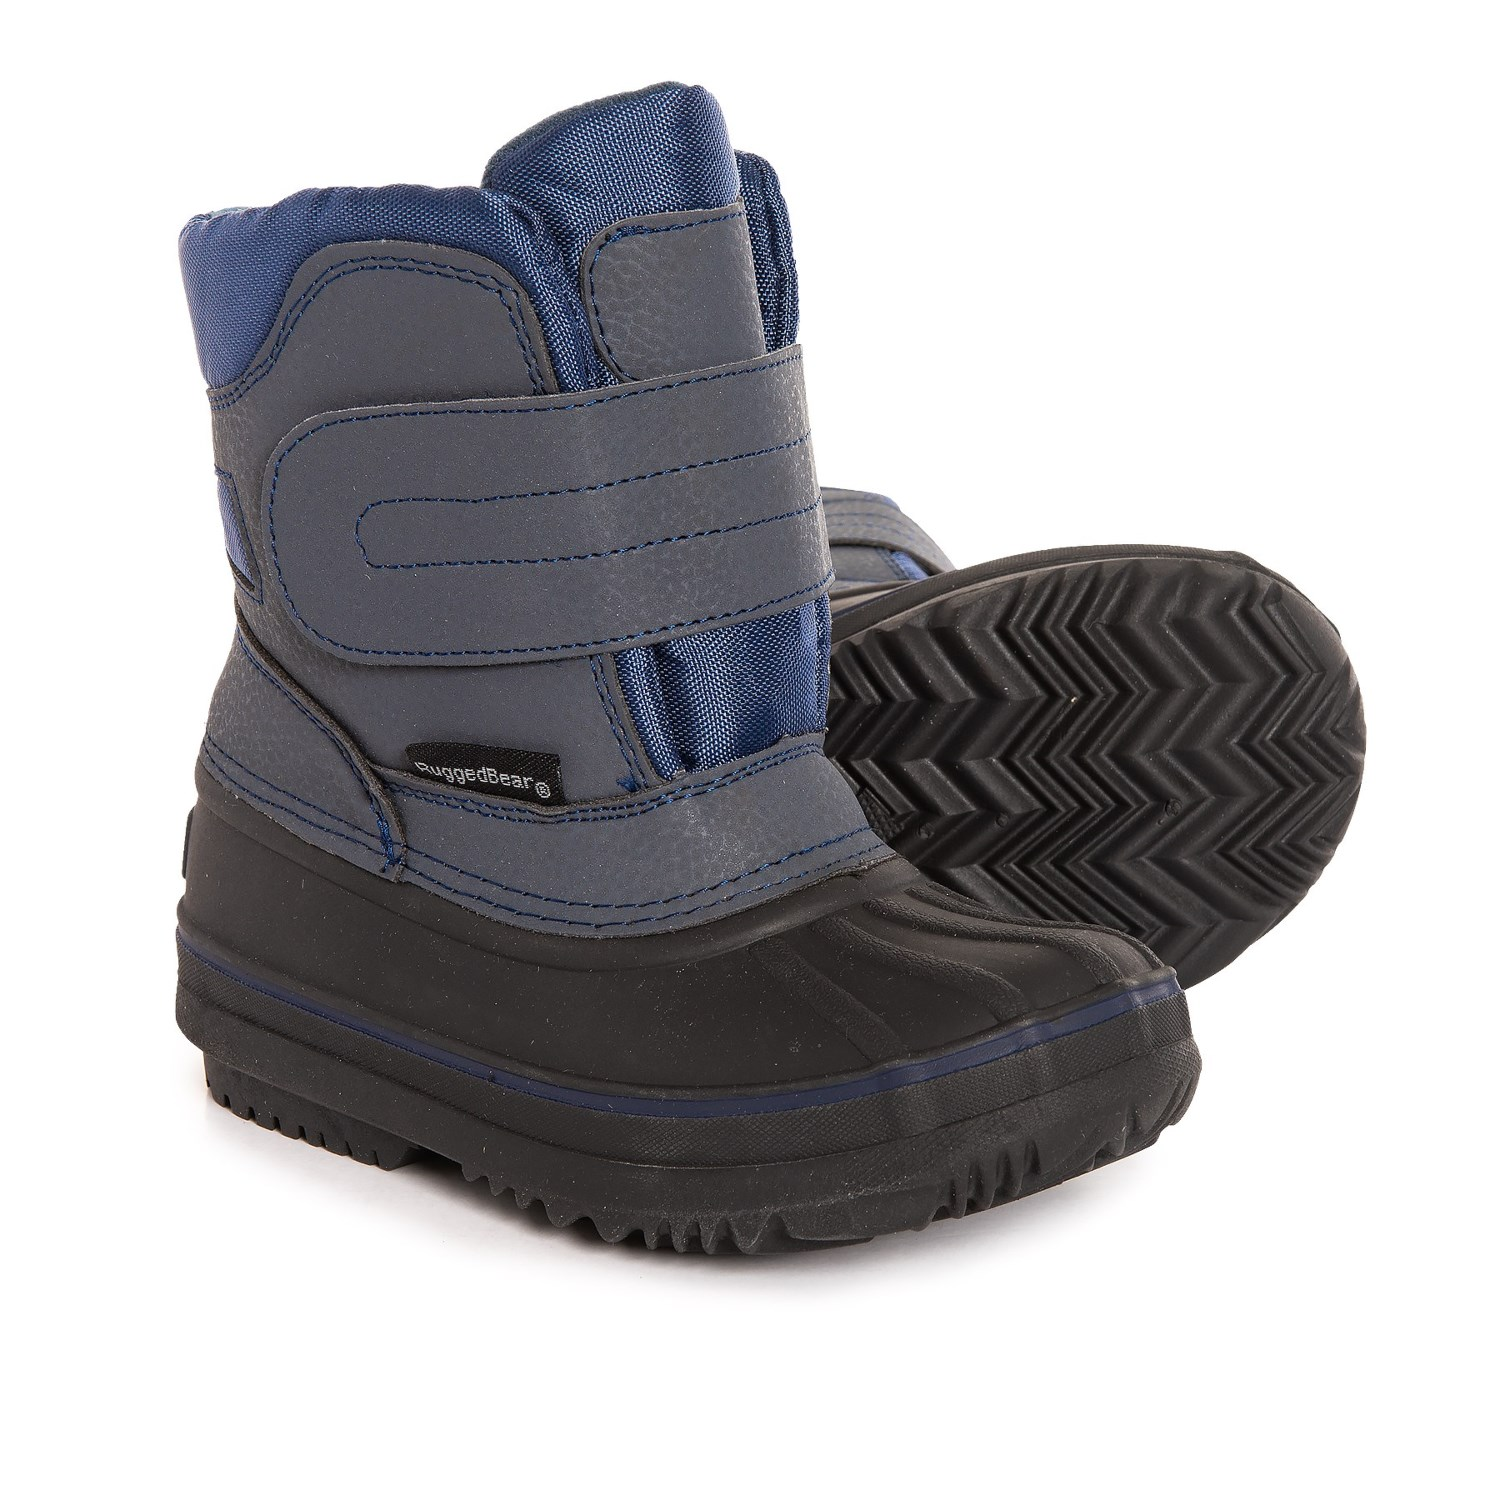 Rugged Bear Single Strap Snow Boots For Boys